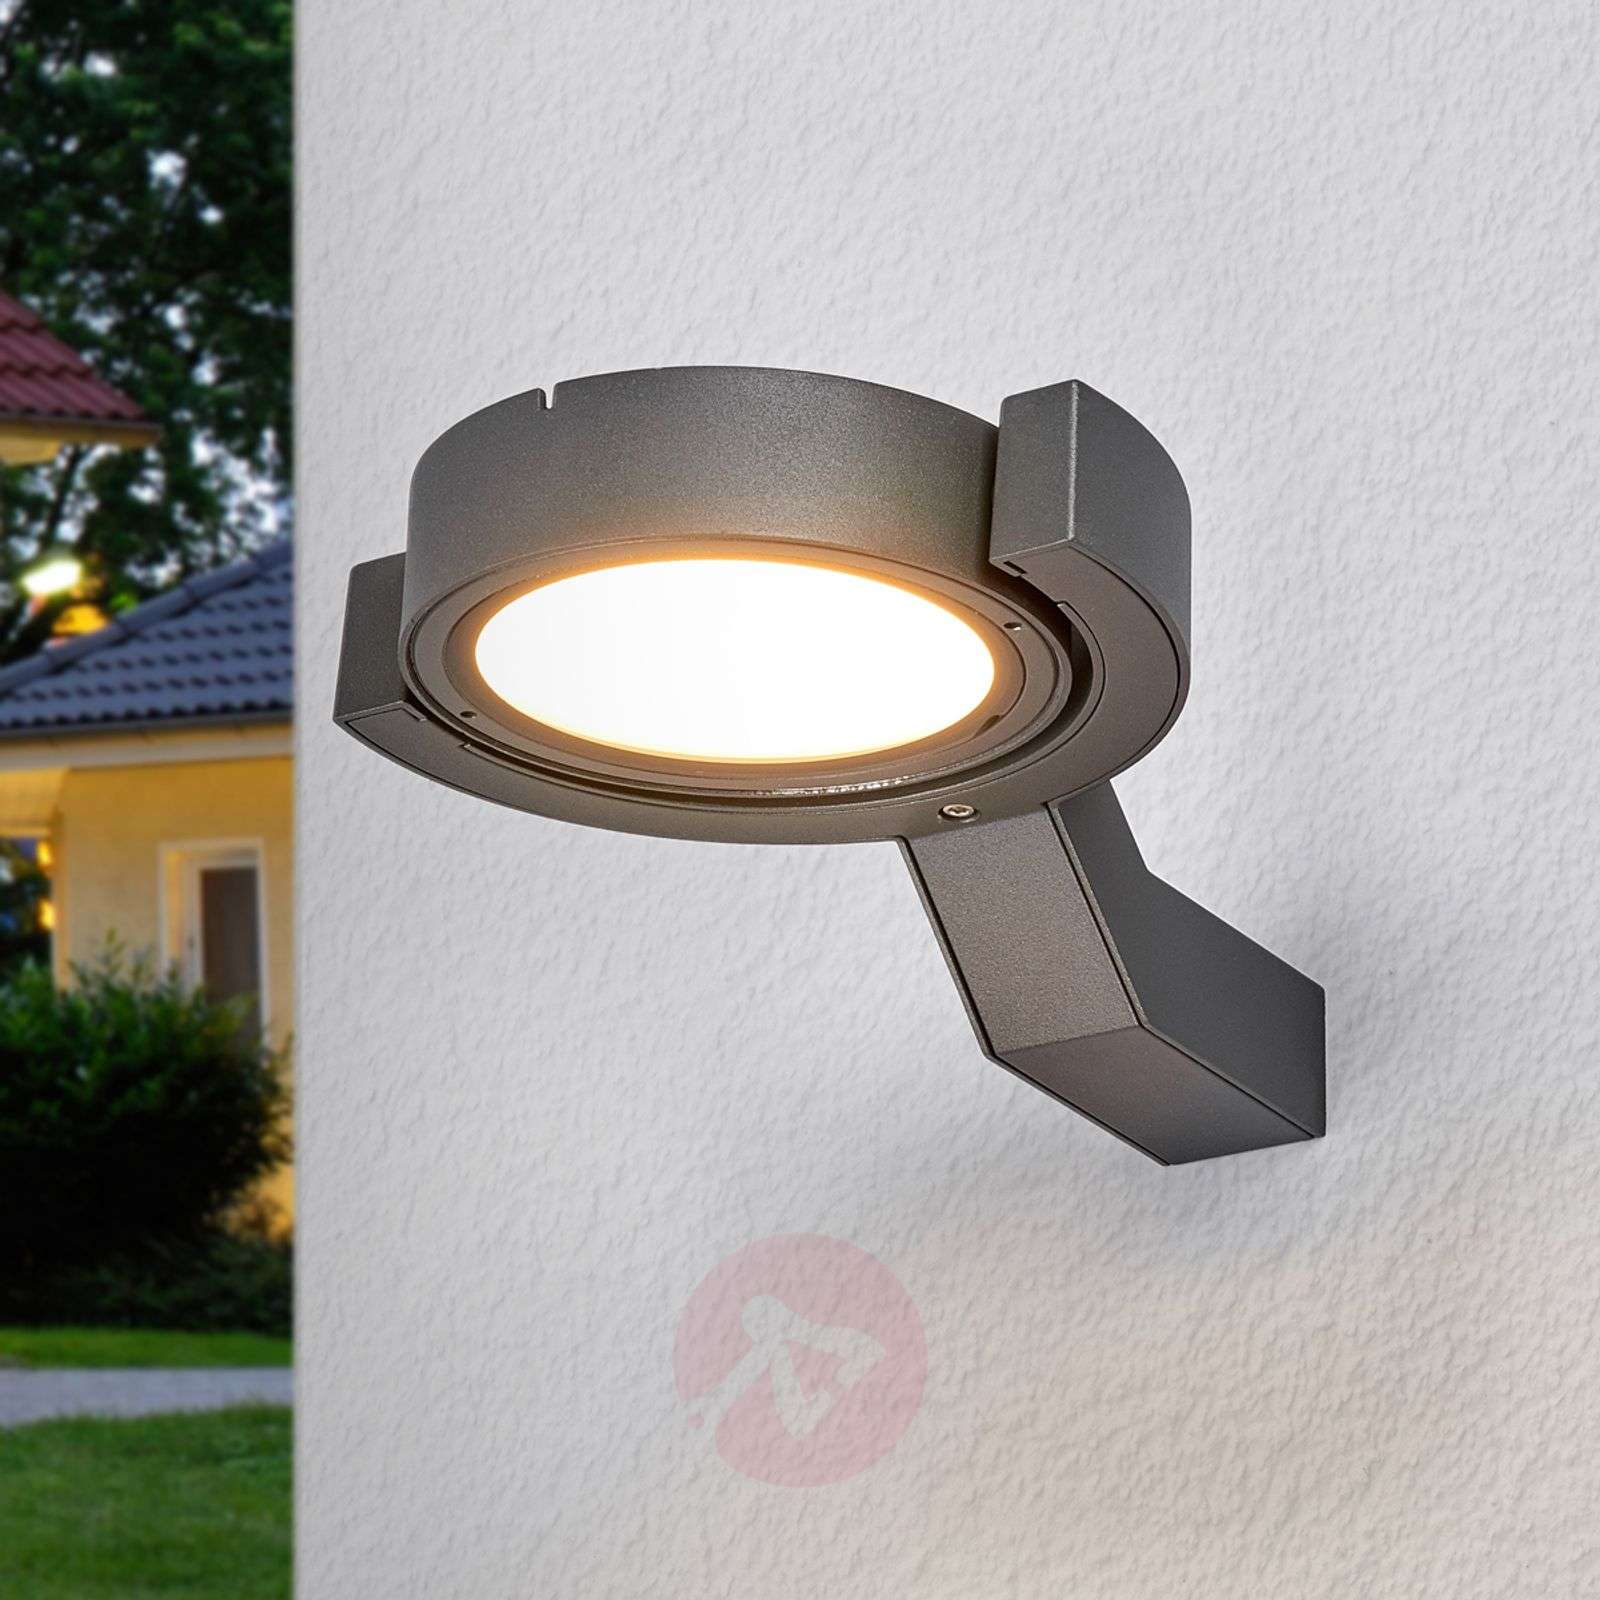 isita adjustable led outdoor wall light. Black Bedroom Furniture Sets. Home Design Ideas